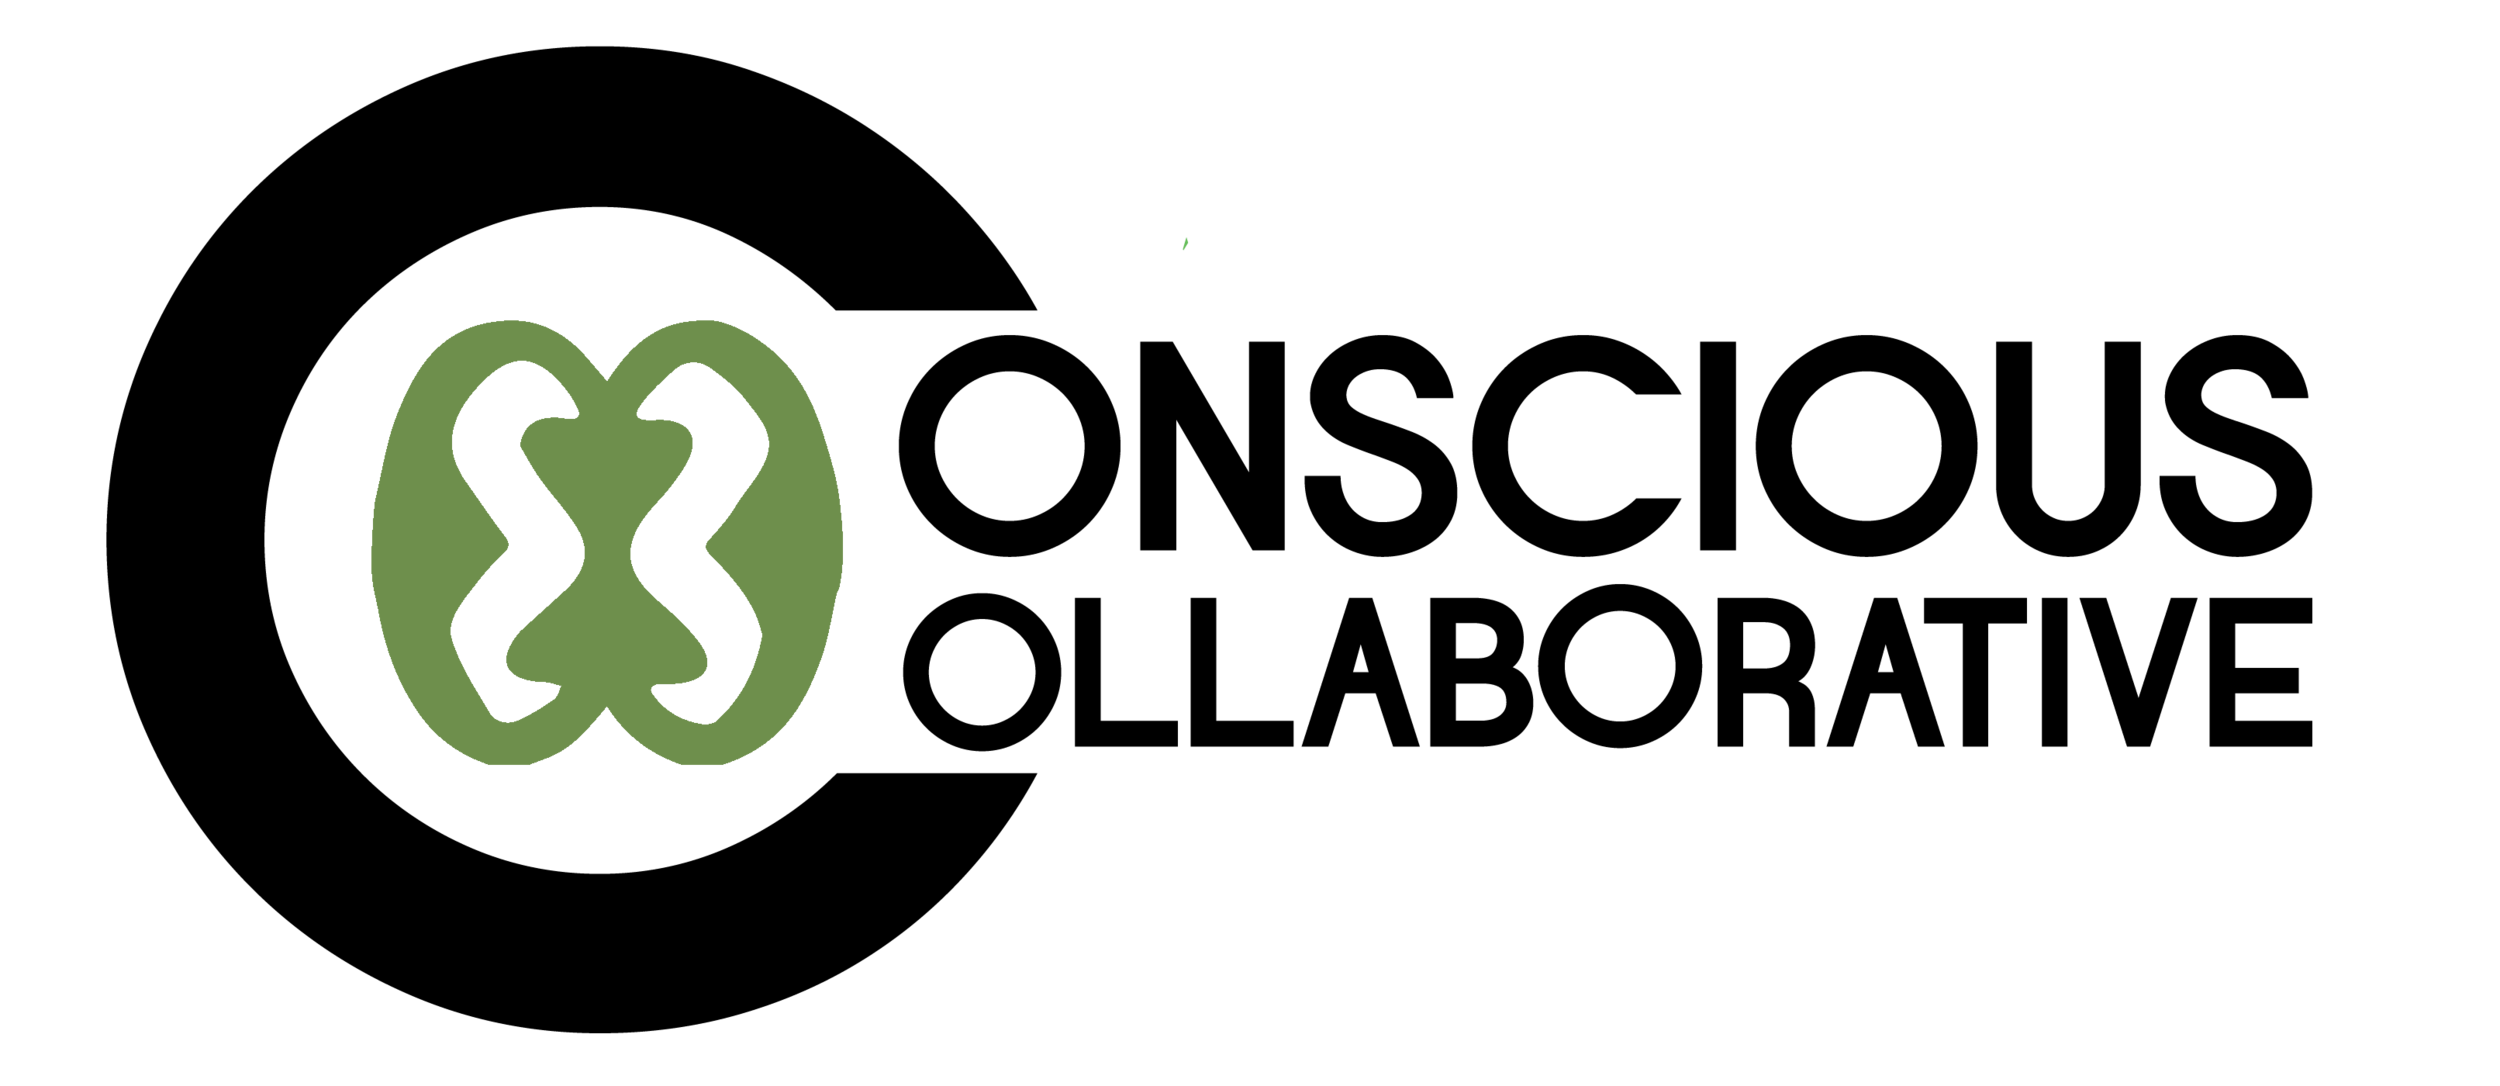 Logo New green (1).png